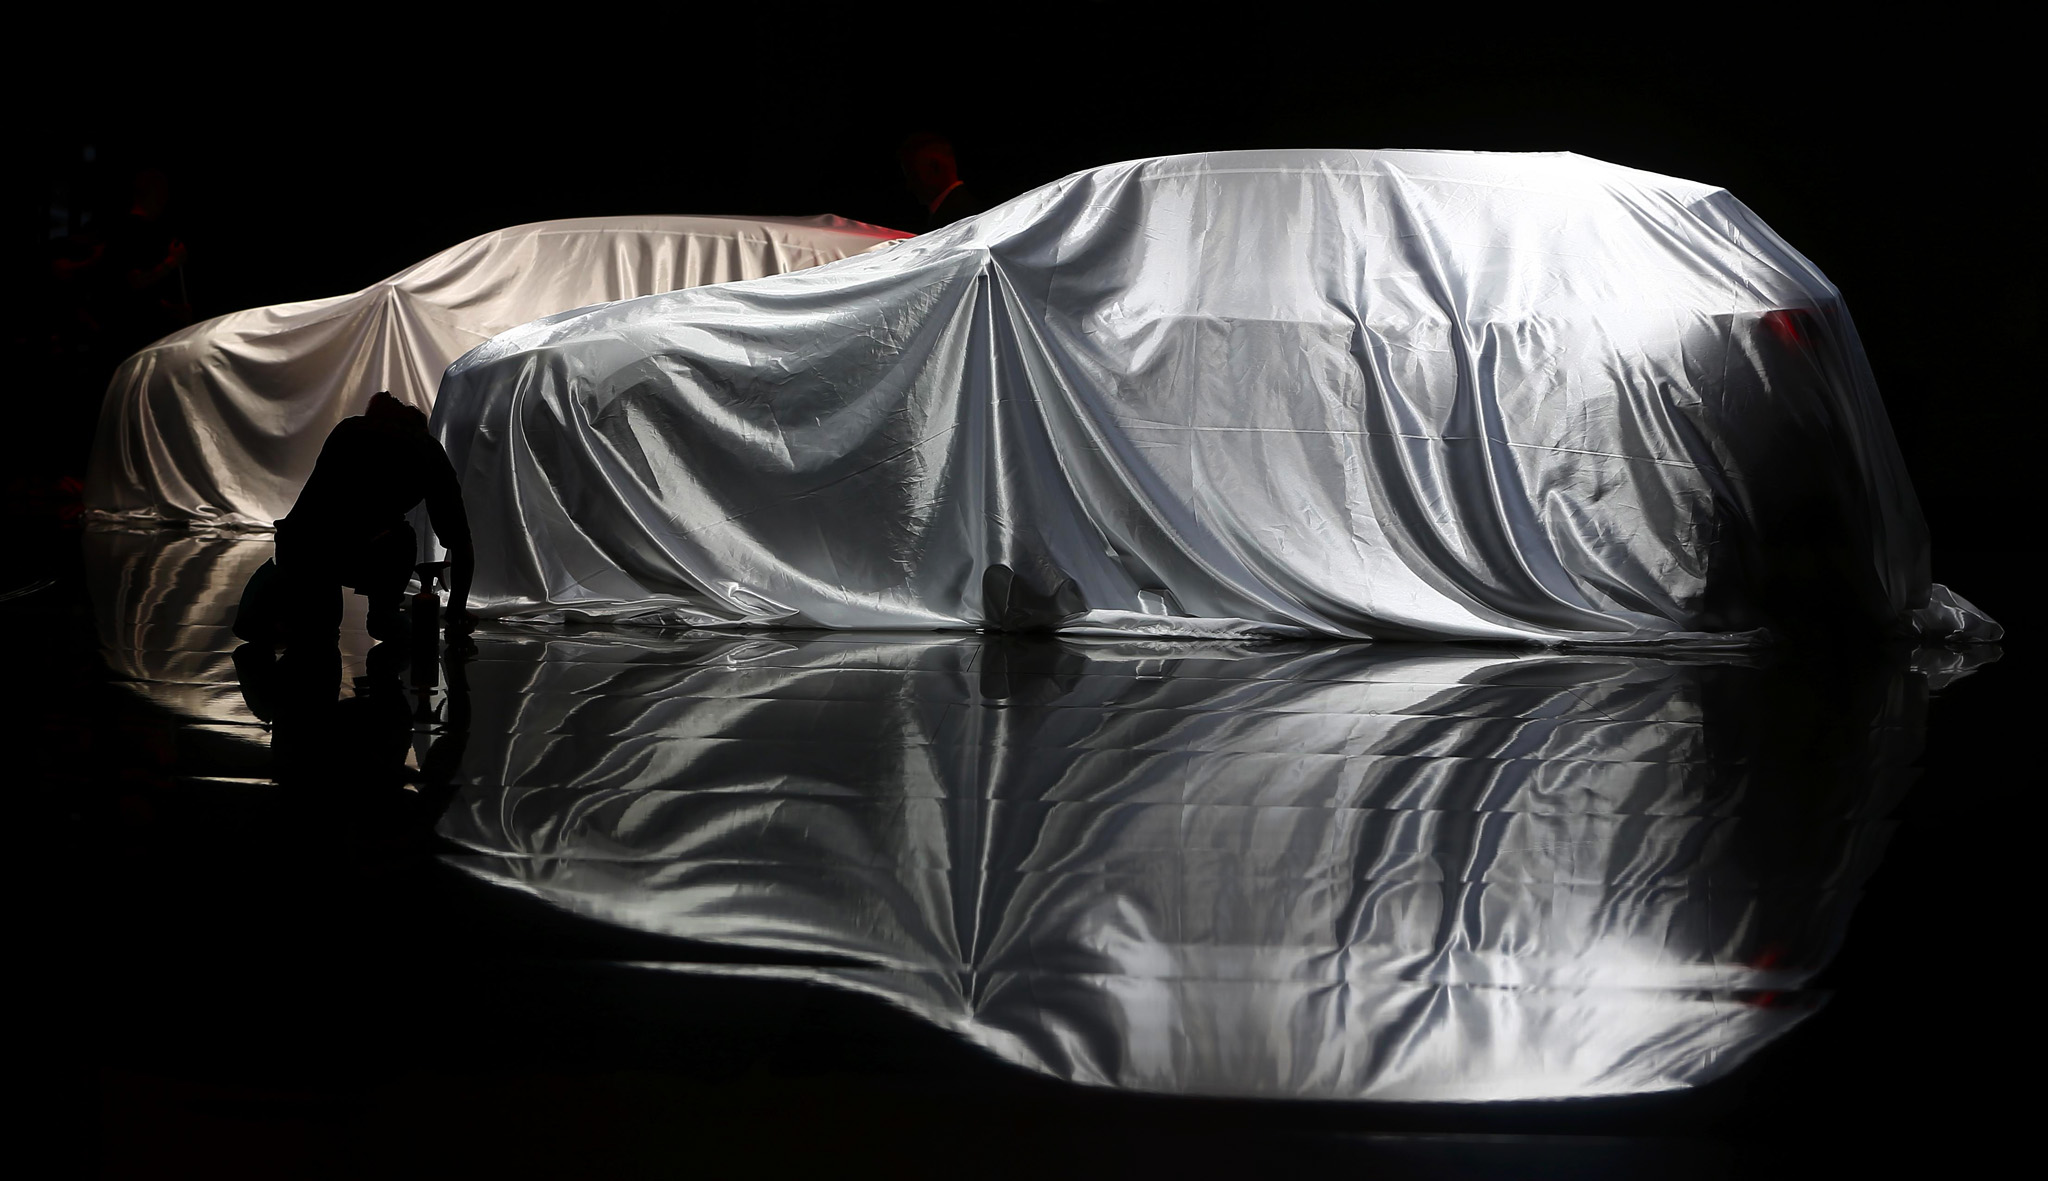 Veiled Infiniti cars are pictured during the media day at the Frankfurt Motor Show (IAA) in Frankfurt, Germany.